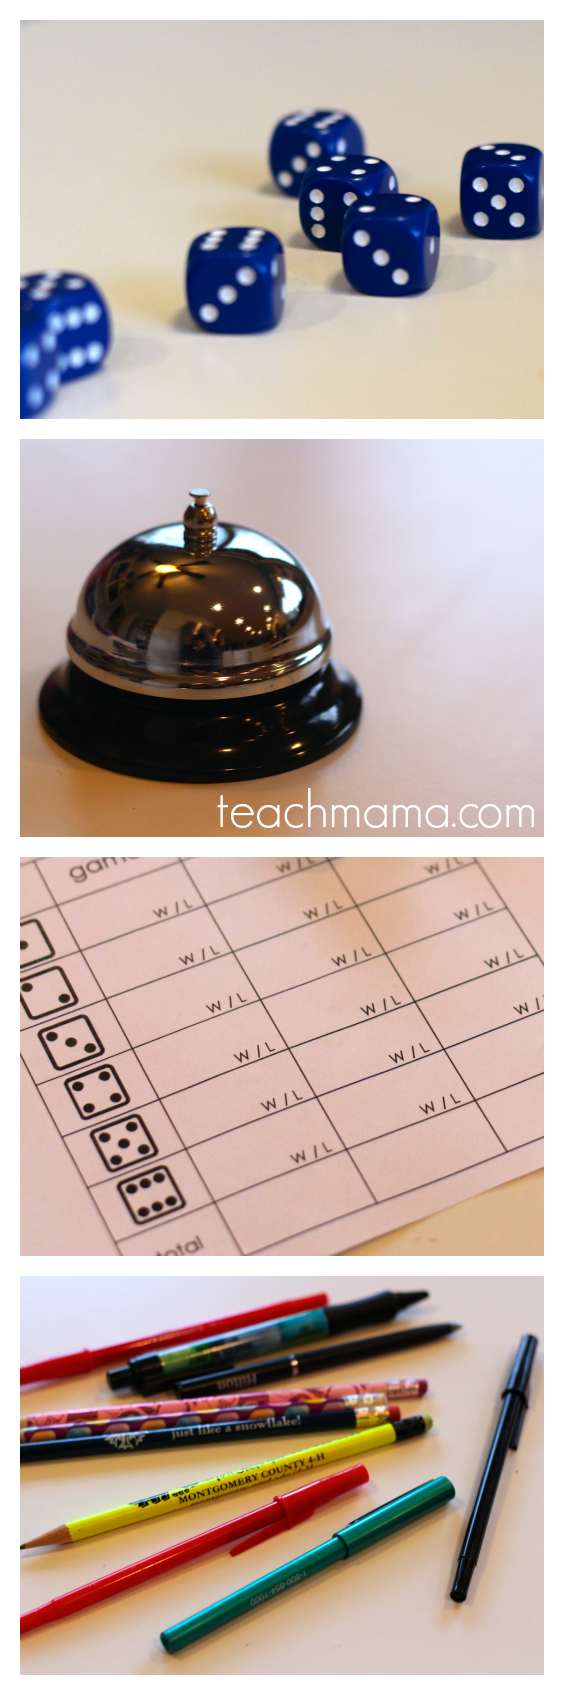 How To Play Bunco Teachmama